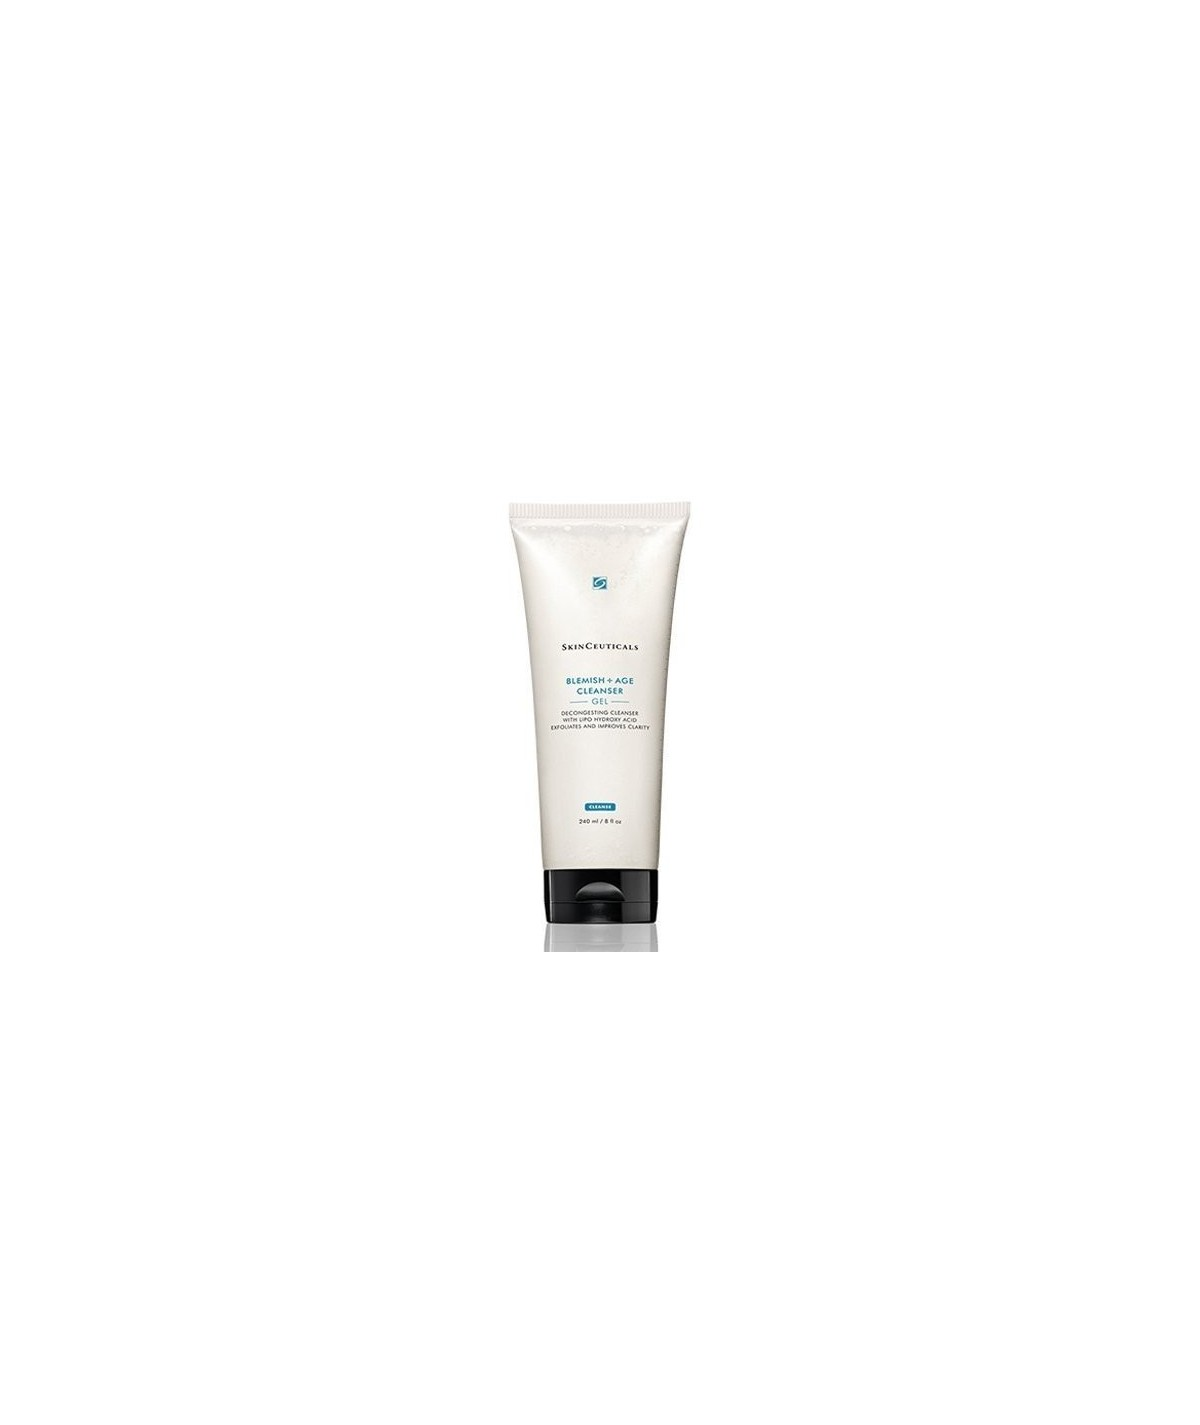 SKINCEUTICALS BLEMISH AND AGE CLEANSER GEL 250 ML